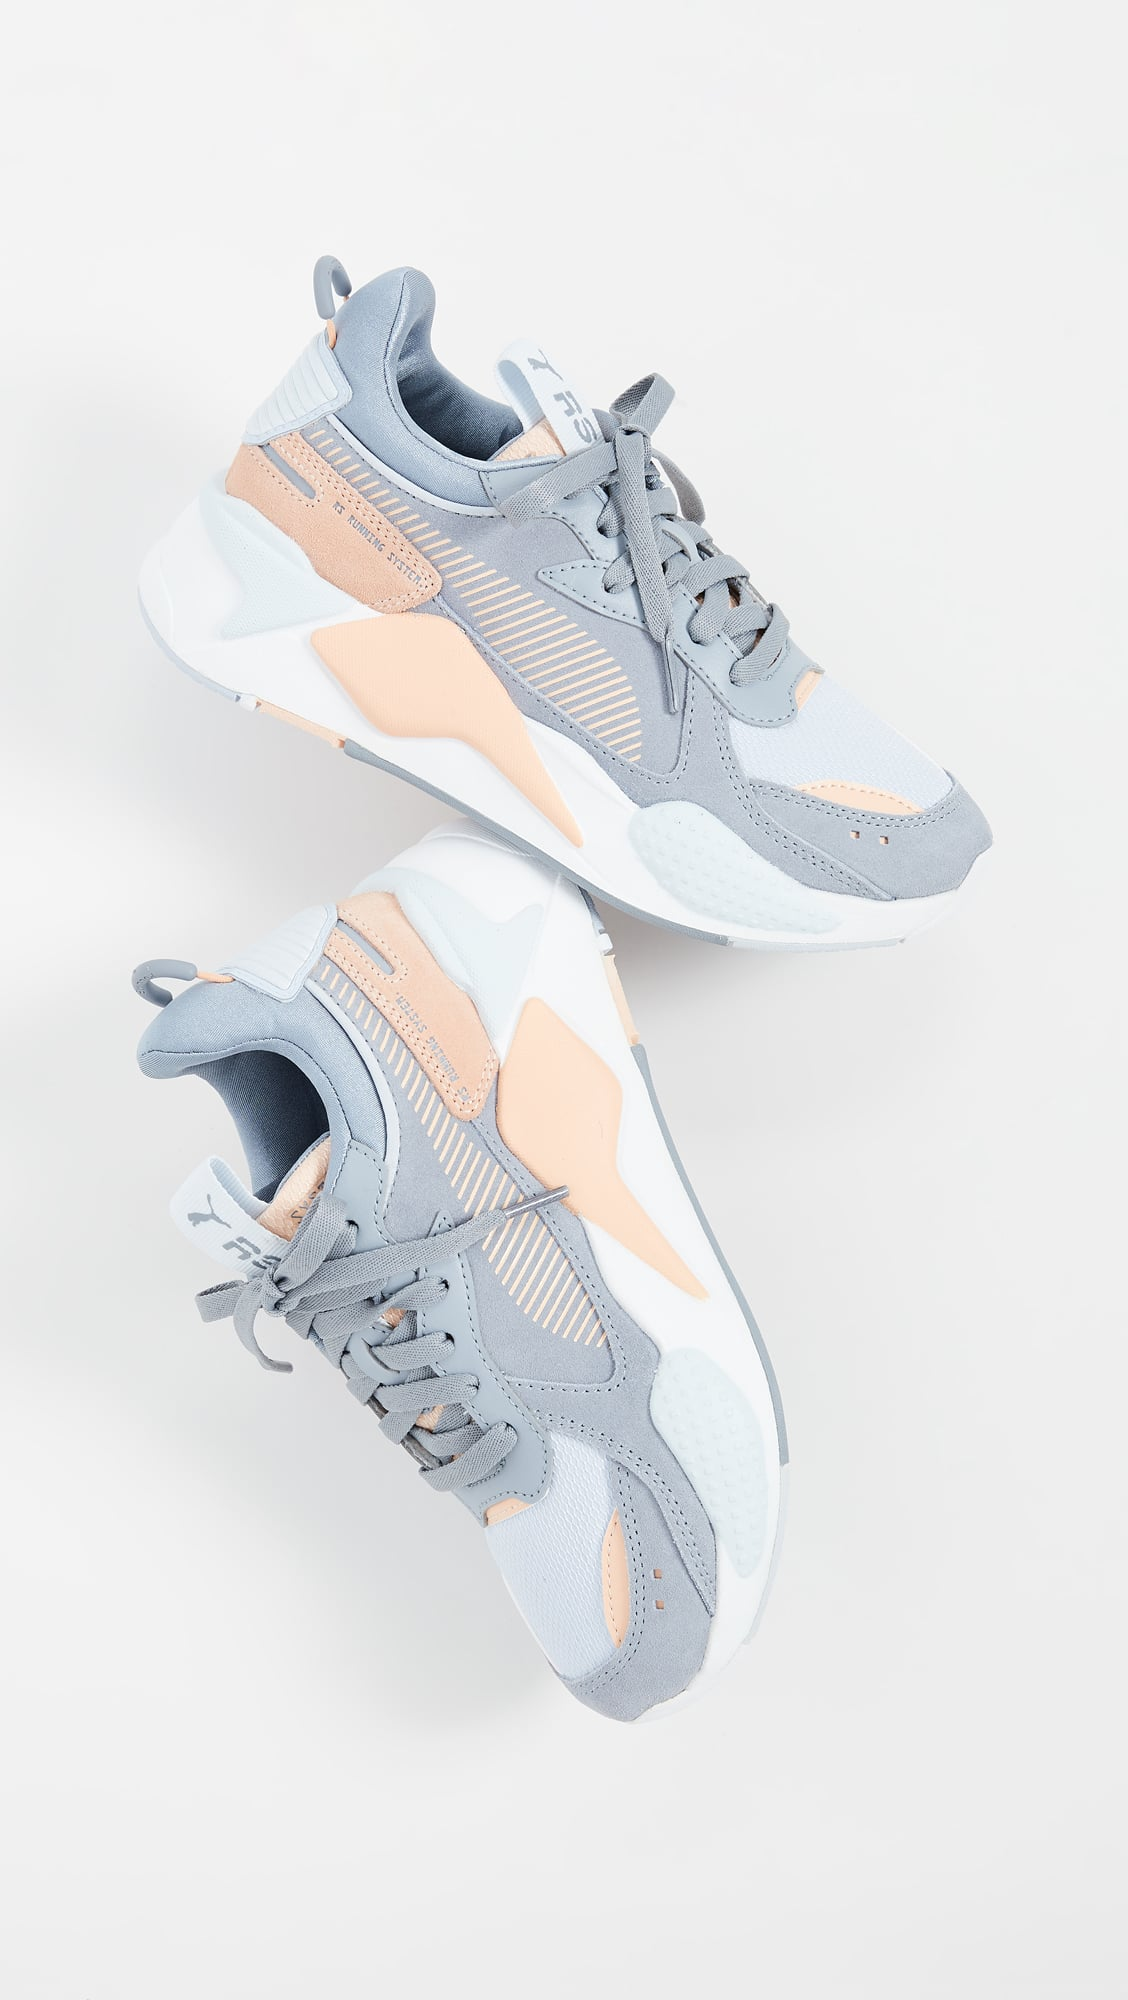 PUMA RS-X Reinvent Sneakers   Best Shopbop Clothes and ...